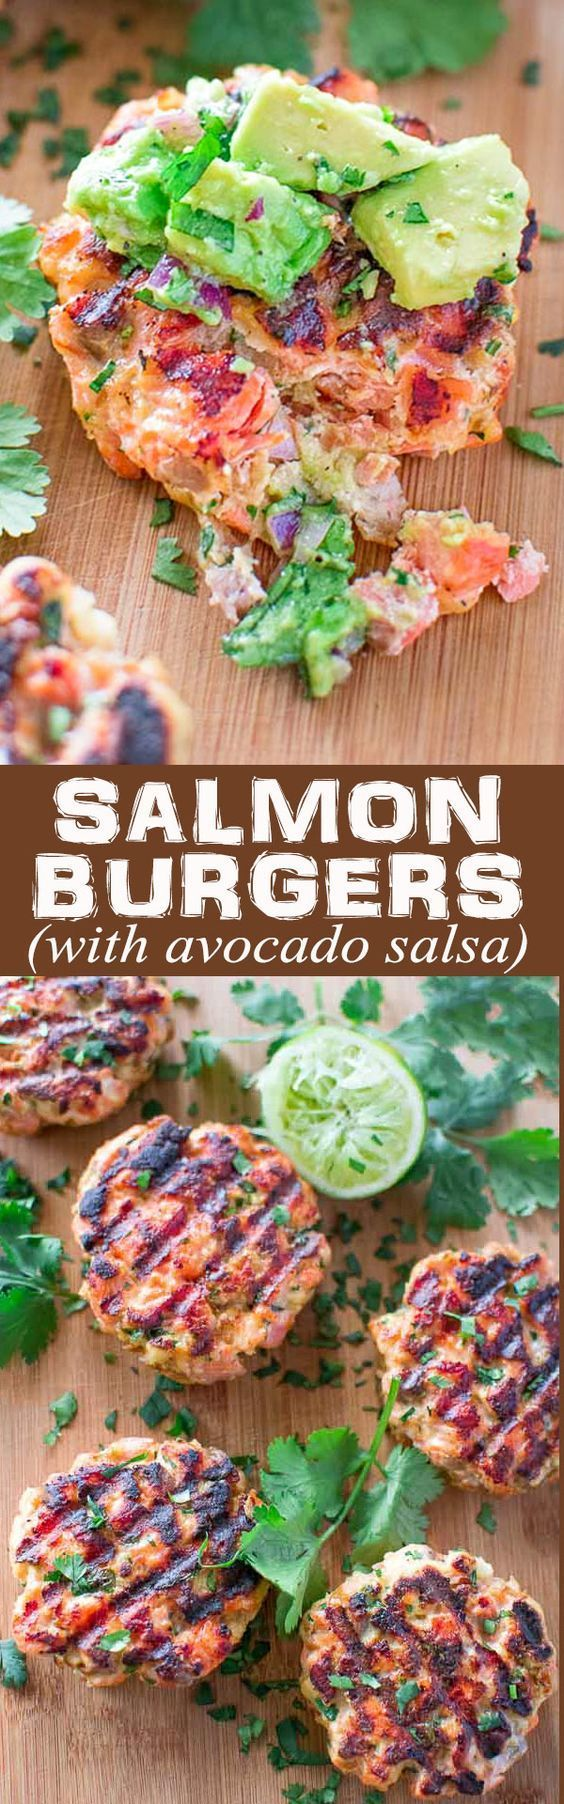 This tasty and easy Salmon Burger recipe is not to be missed! Ditch the bun and serve it with mouthwatering Avocado Salsa.